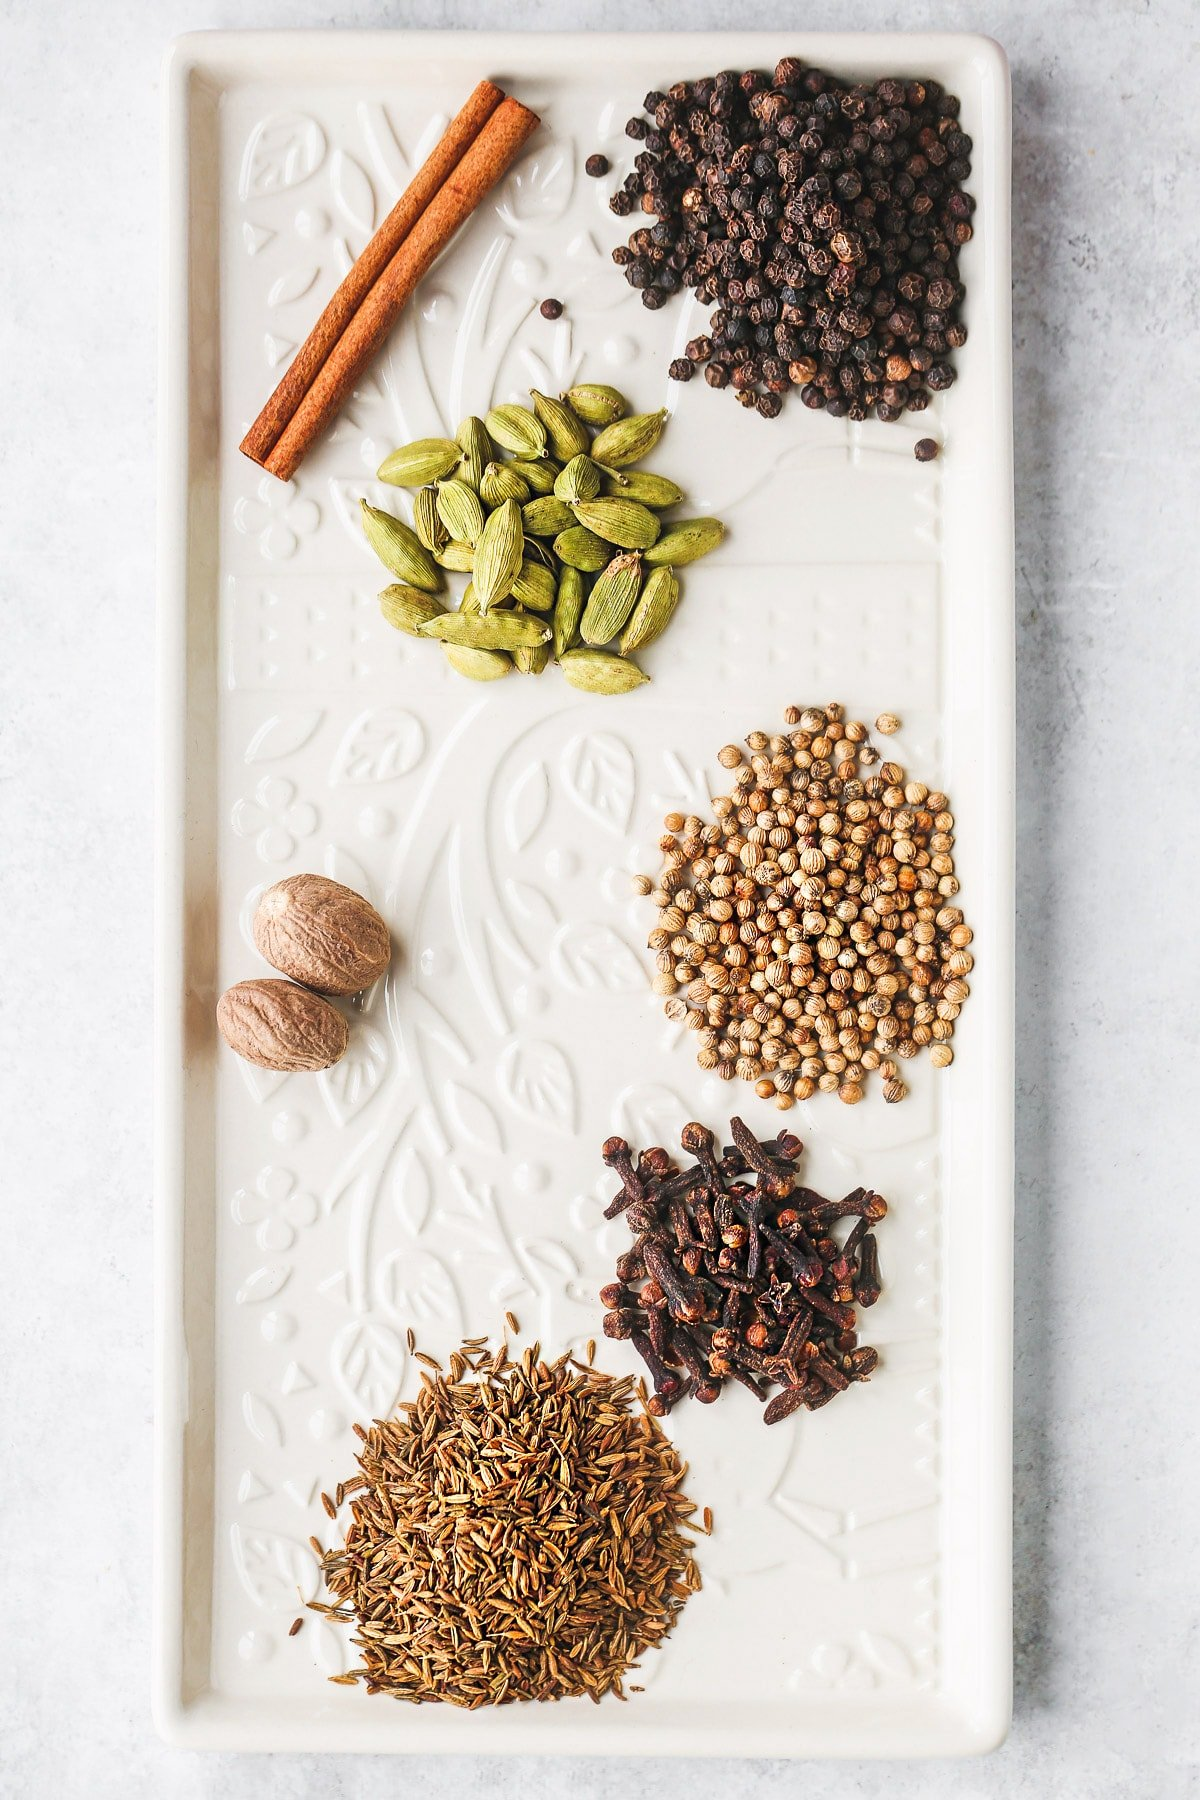 Baharat ingredients on a white glass tray